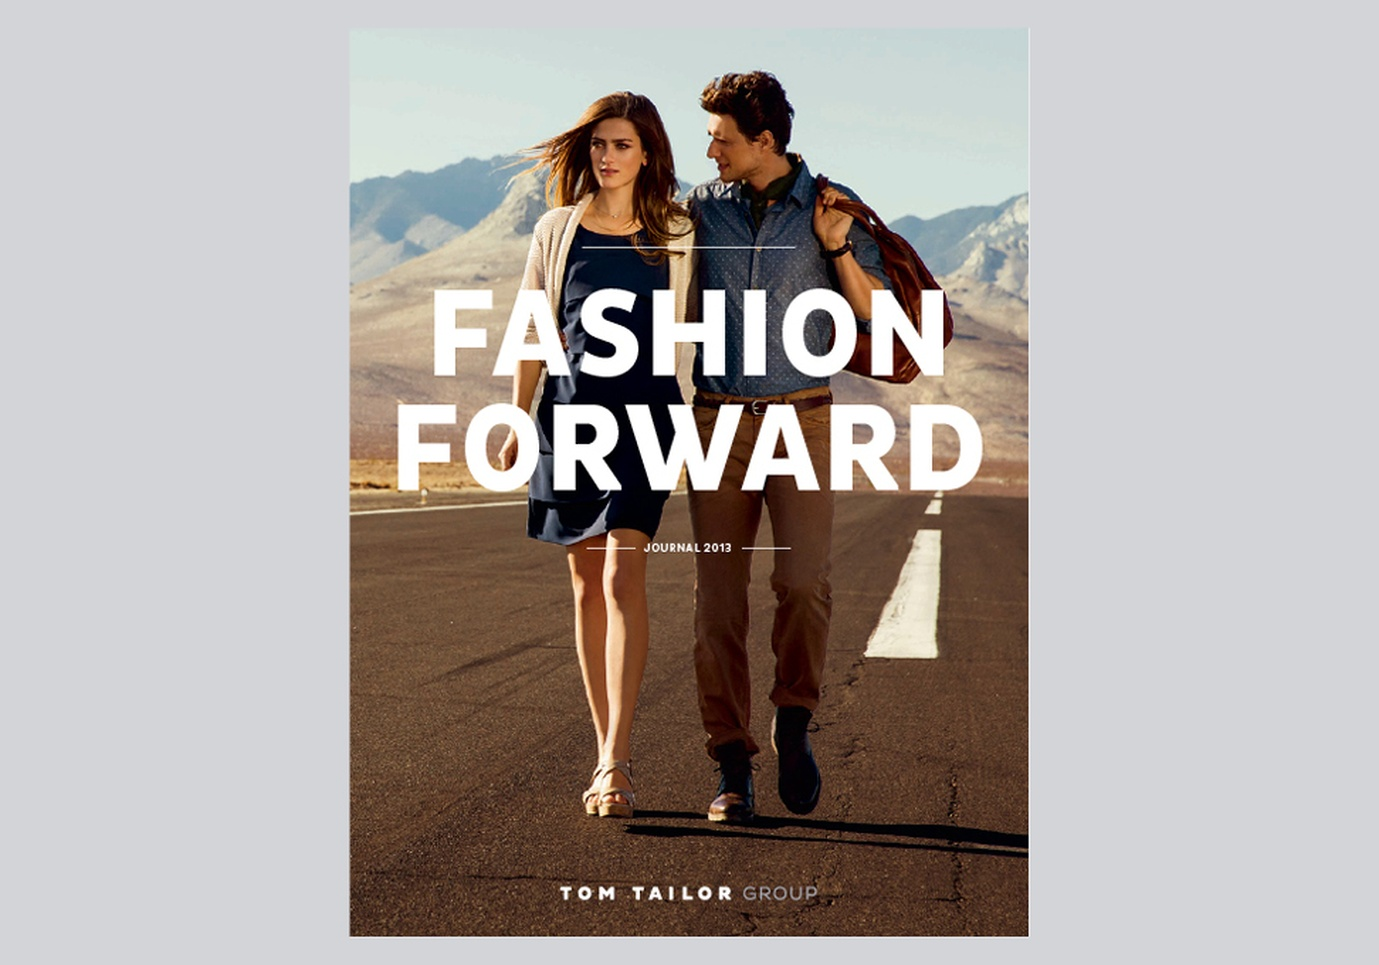 Tom Tailor Winter Love A Fashion Friend Tom Tailor Annual Report 2013 Fashion Forward Graphis